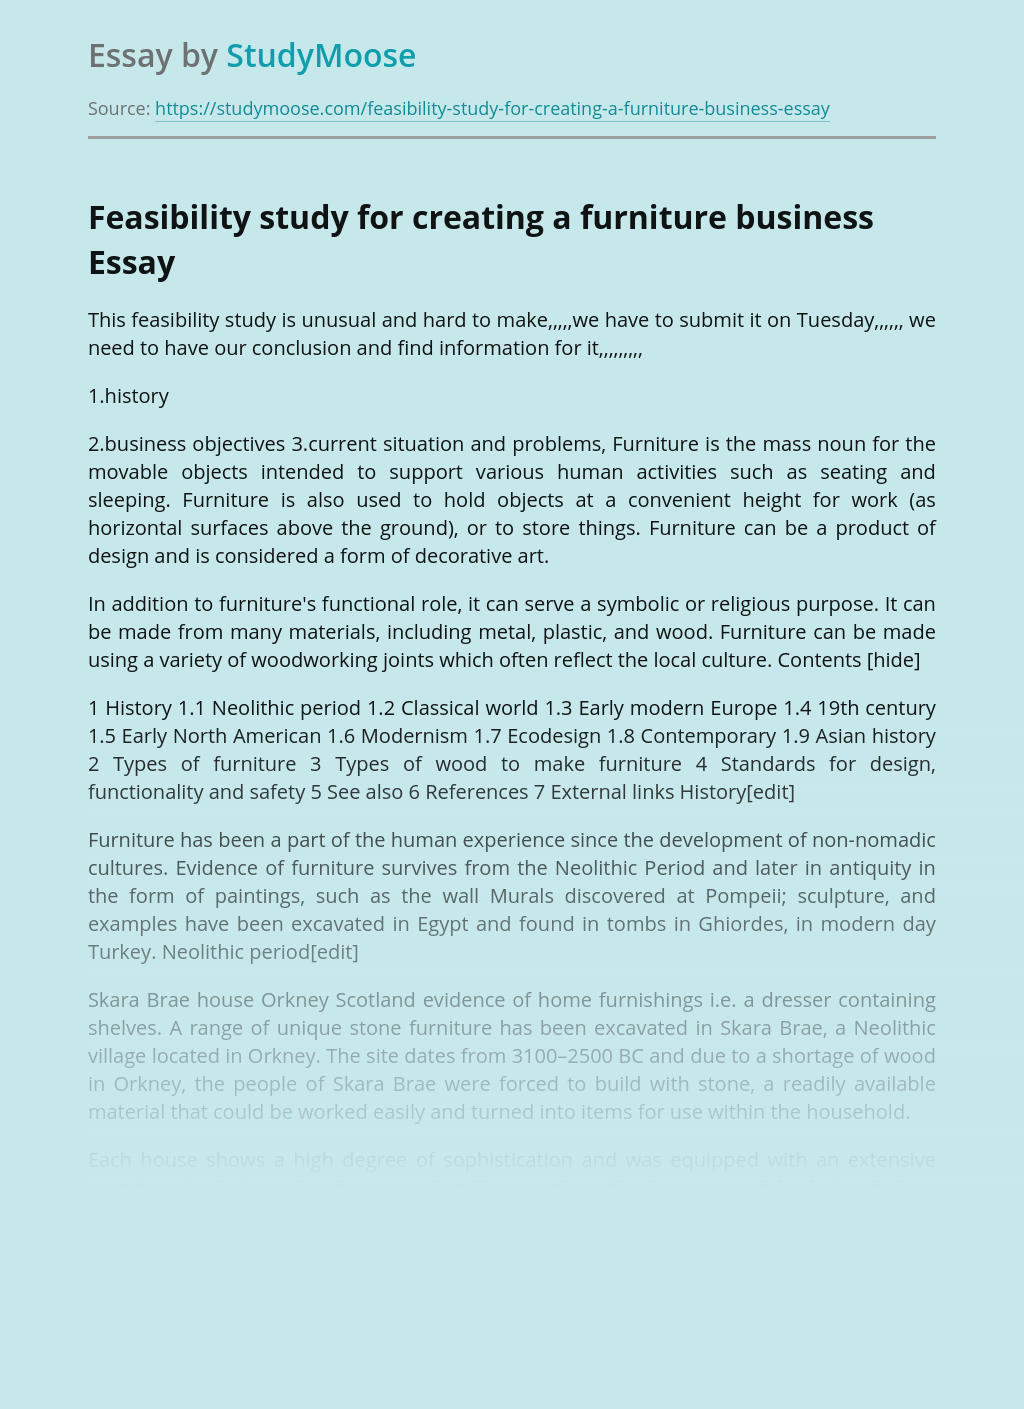 Feasibility study for creating a furniture business